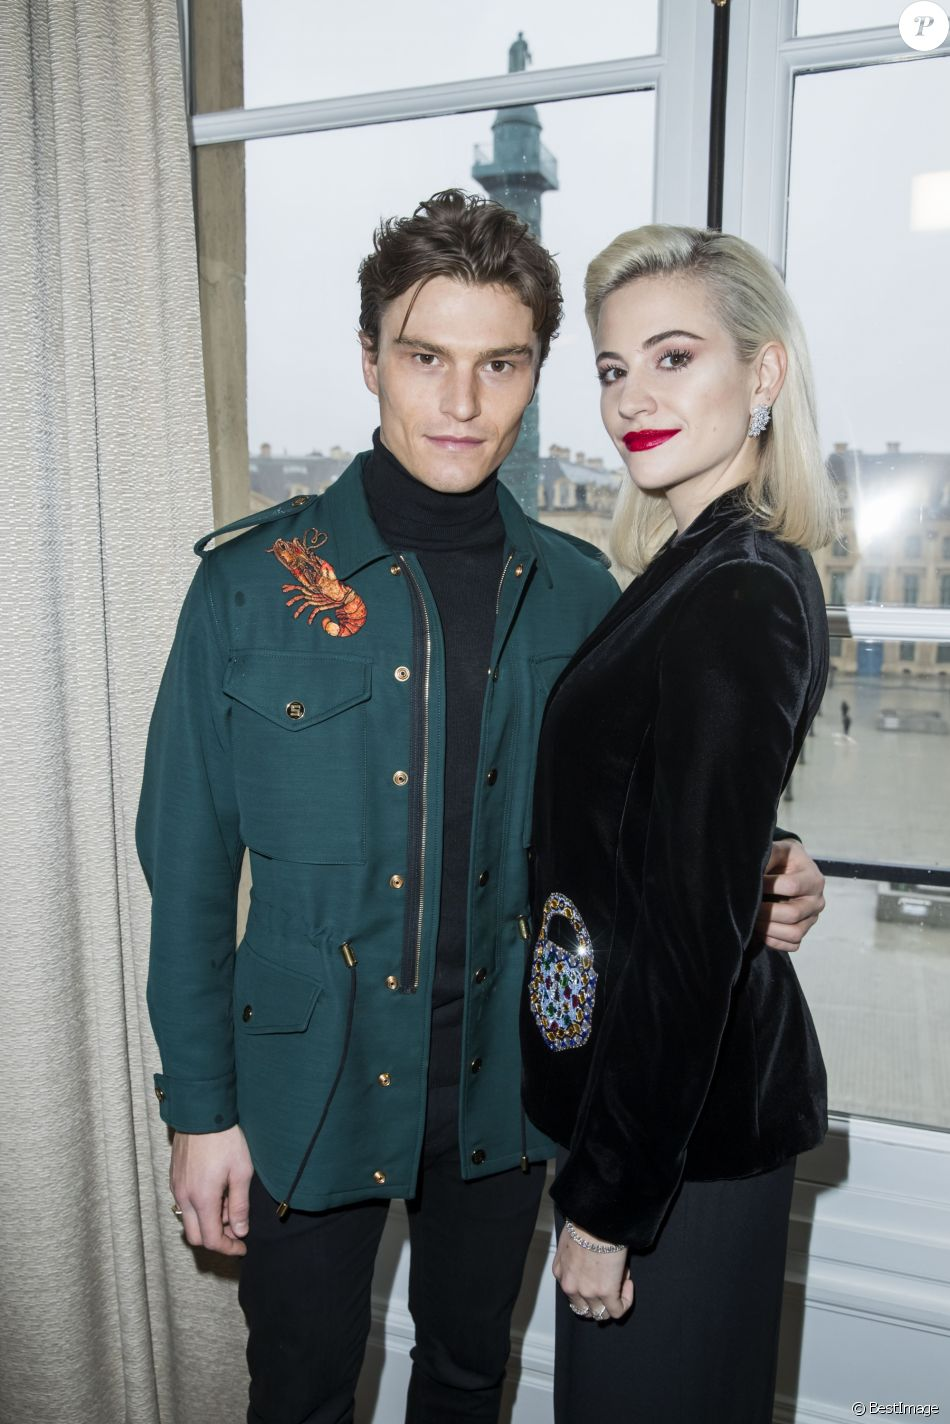 pixie lott et son compagnon oliver cheshire d fil de mode maison schiaparelli collection. Black Bedroom Furniture Sets. Home Design Ideas